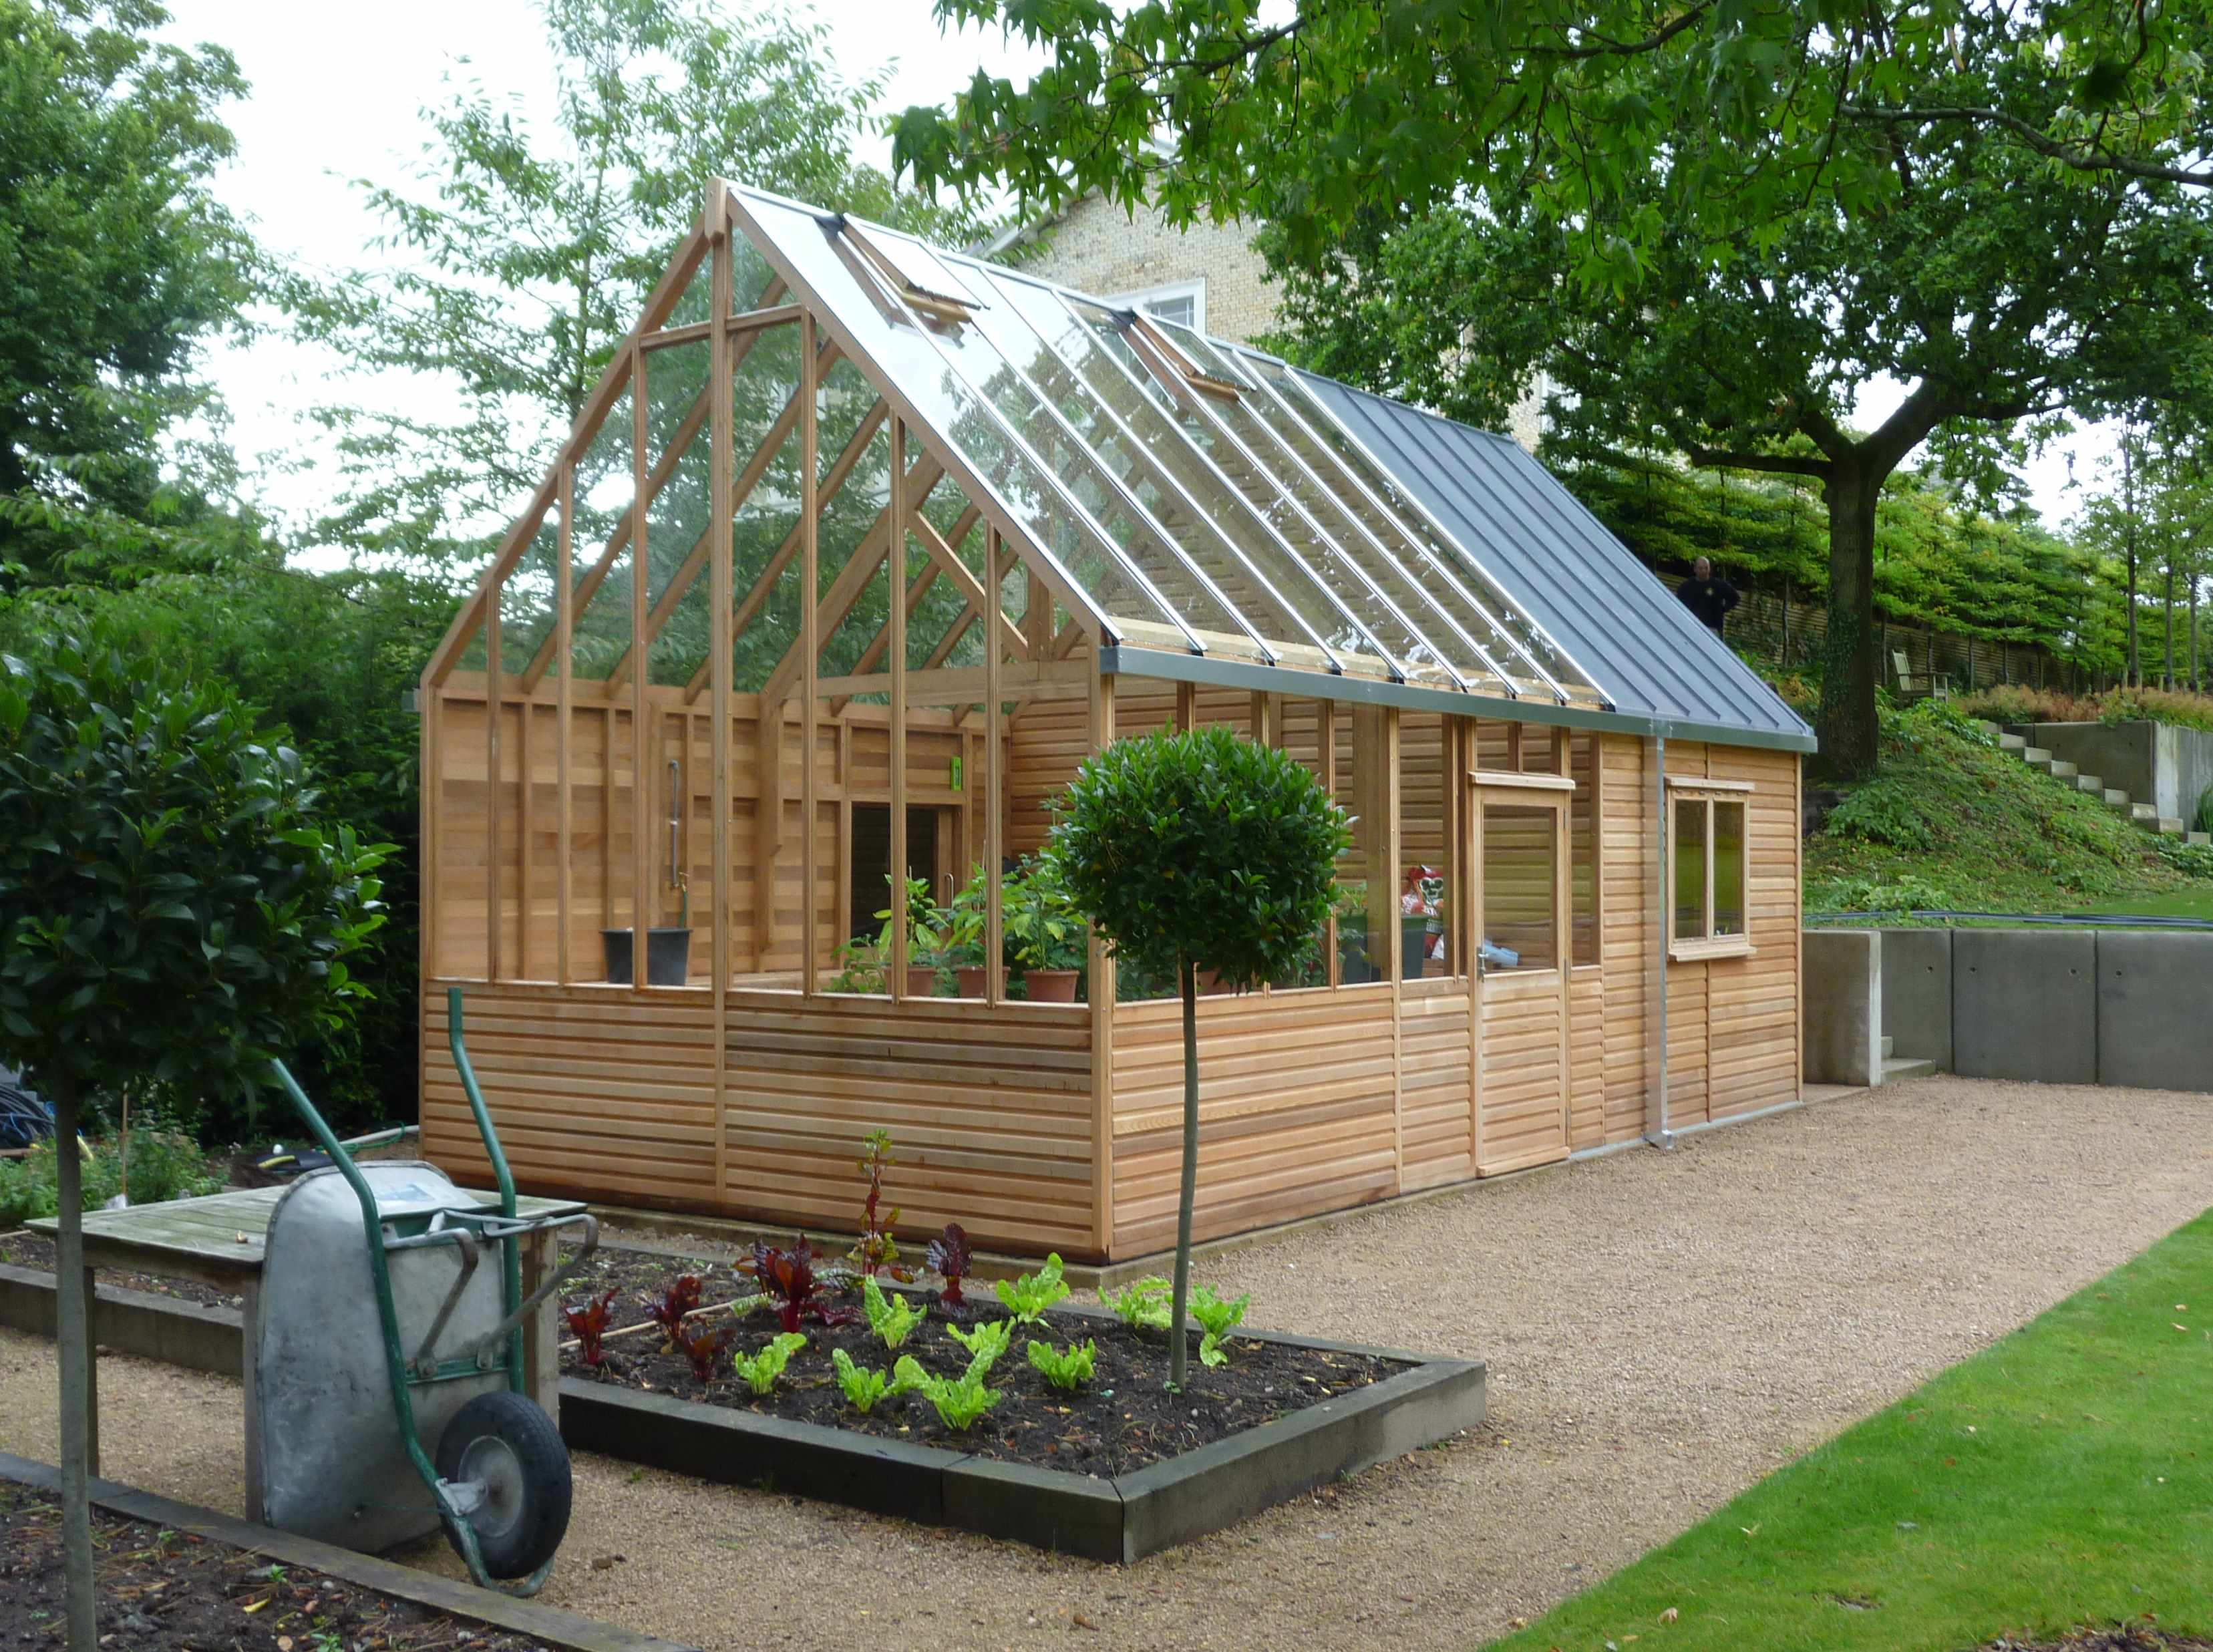 15ft x 24ft kings bromley greenhouse with home office extension was